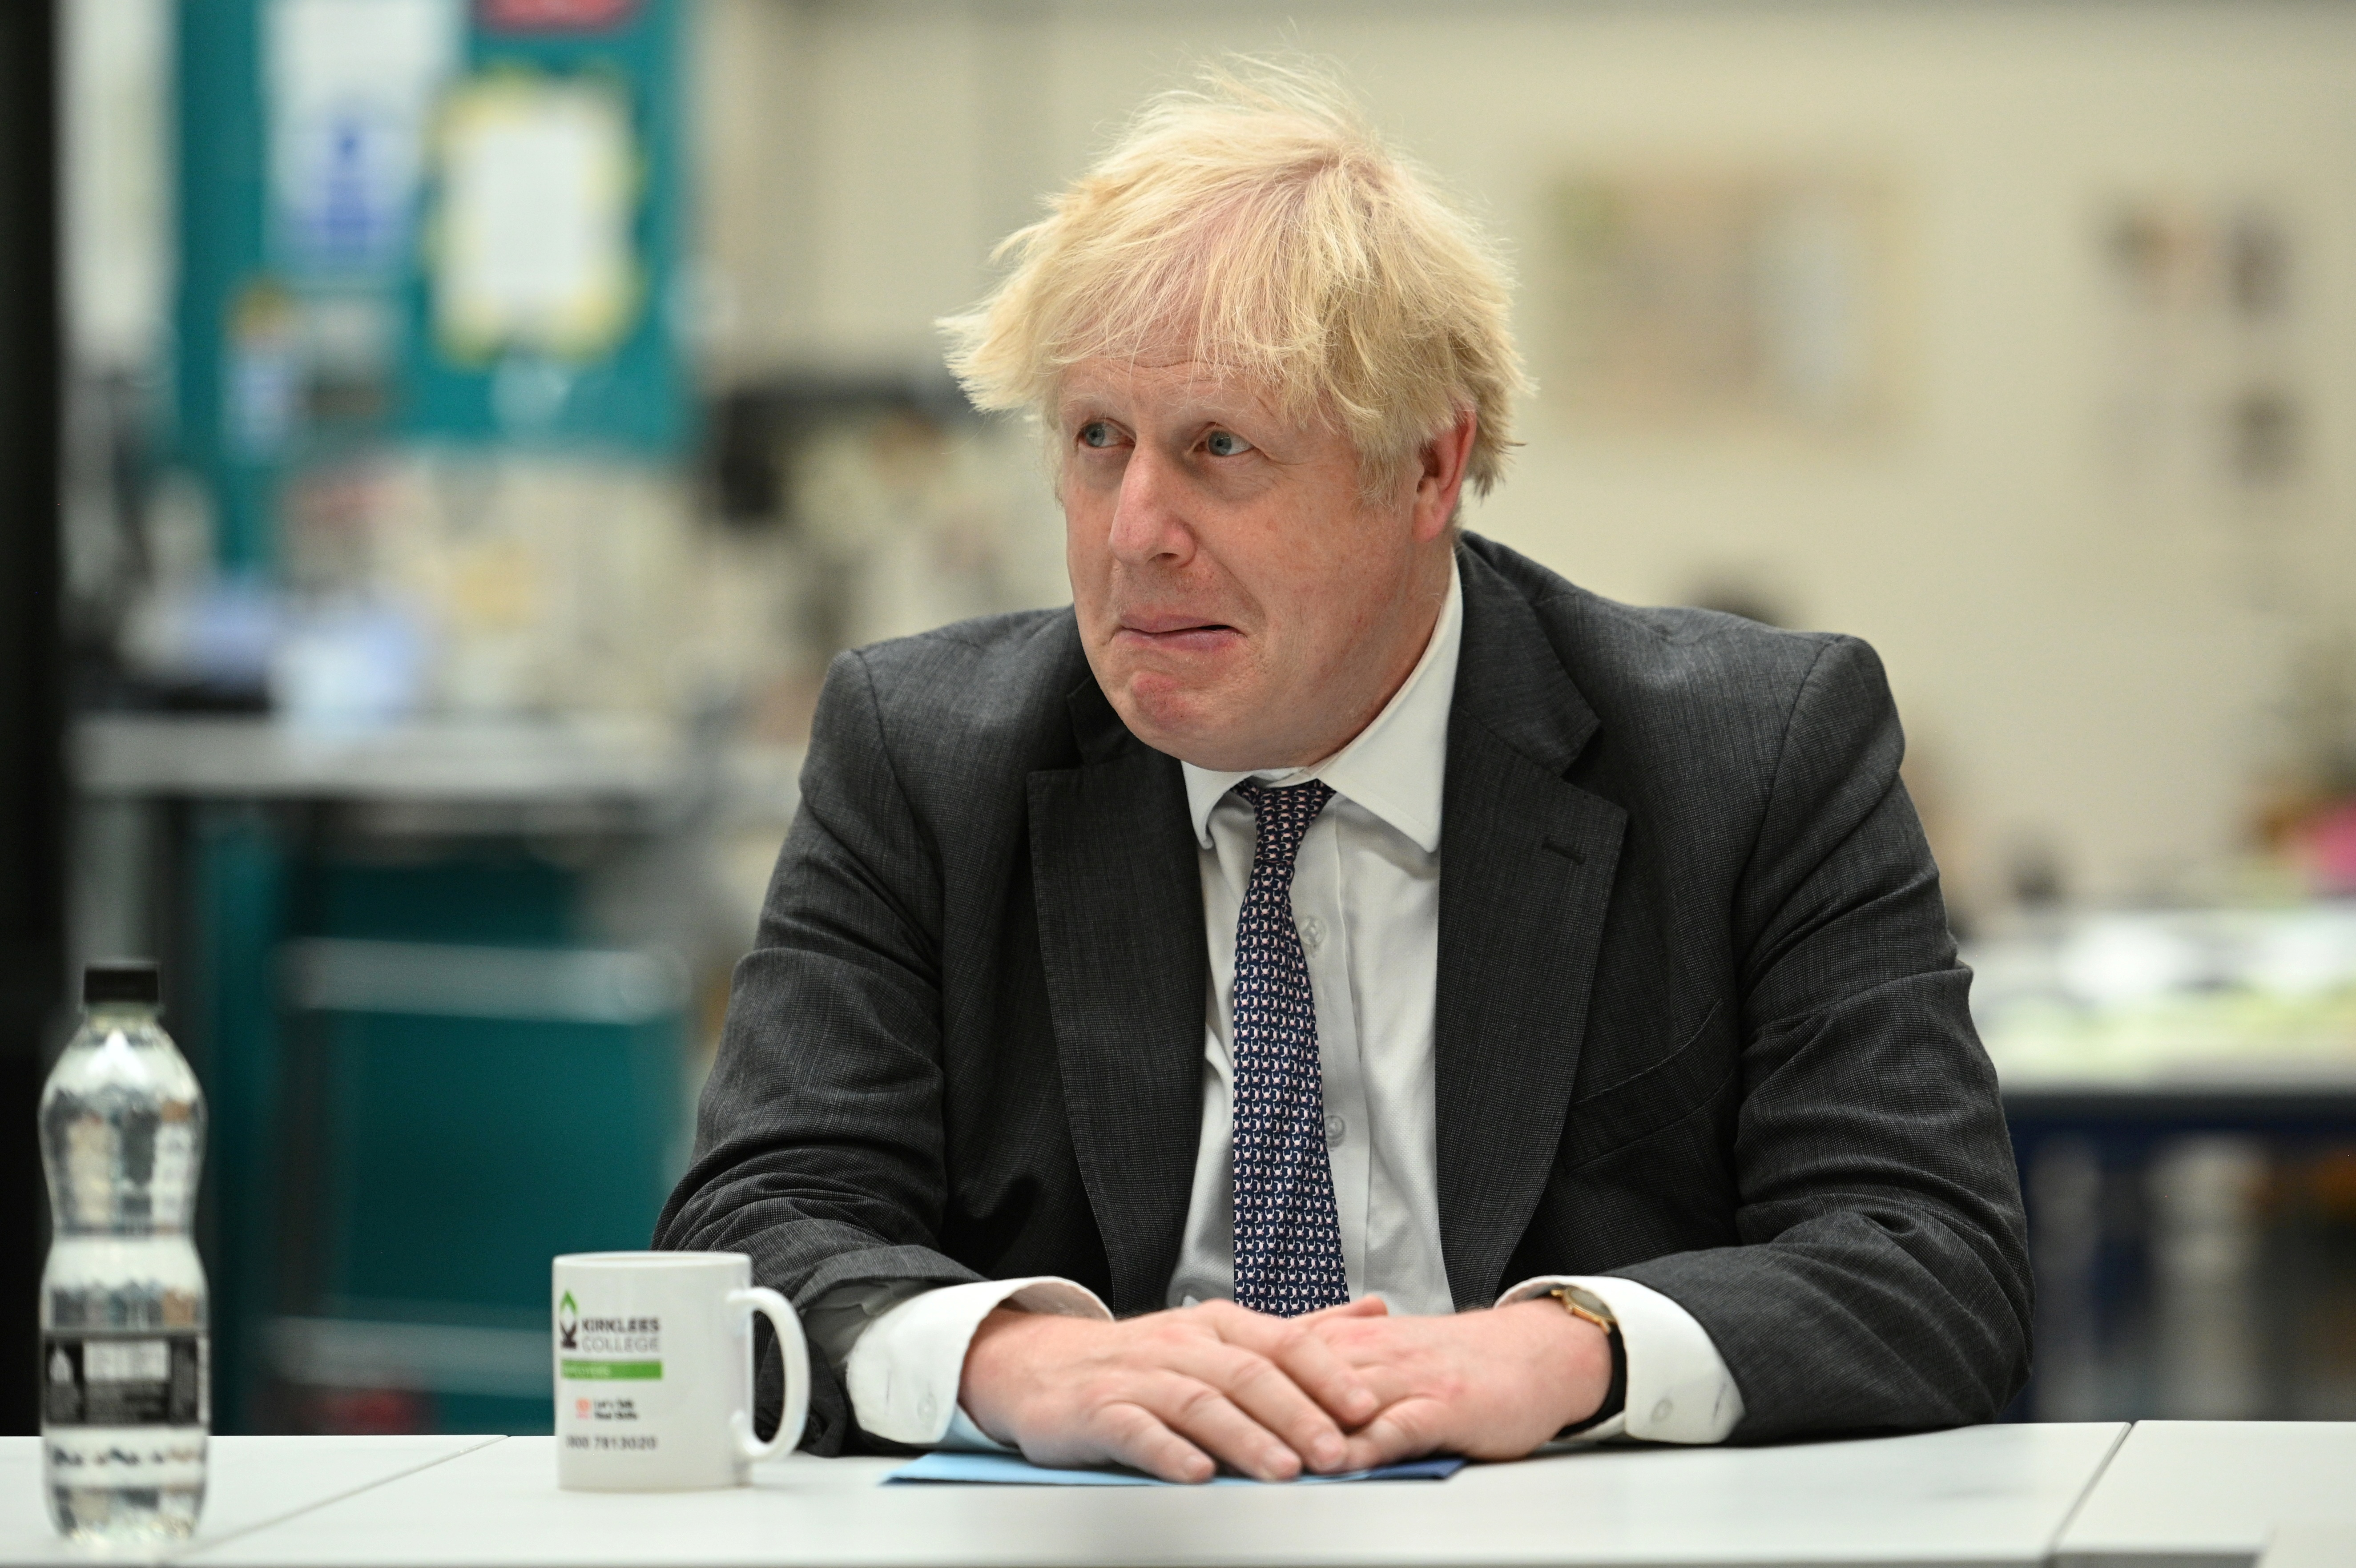 Britain's Prime Minister Boris Johnson chats with teachers in the Arts and Design area during a visit to Kirklees College Springfield Sixth Form Centre in Dewsbury, West Yorkshire, Britain June 18, 2021. Oli Scarff/Pool via REUTERS